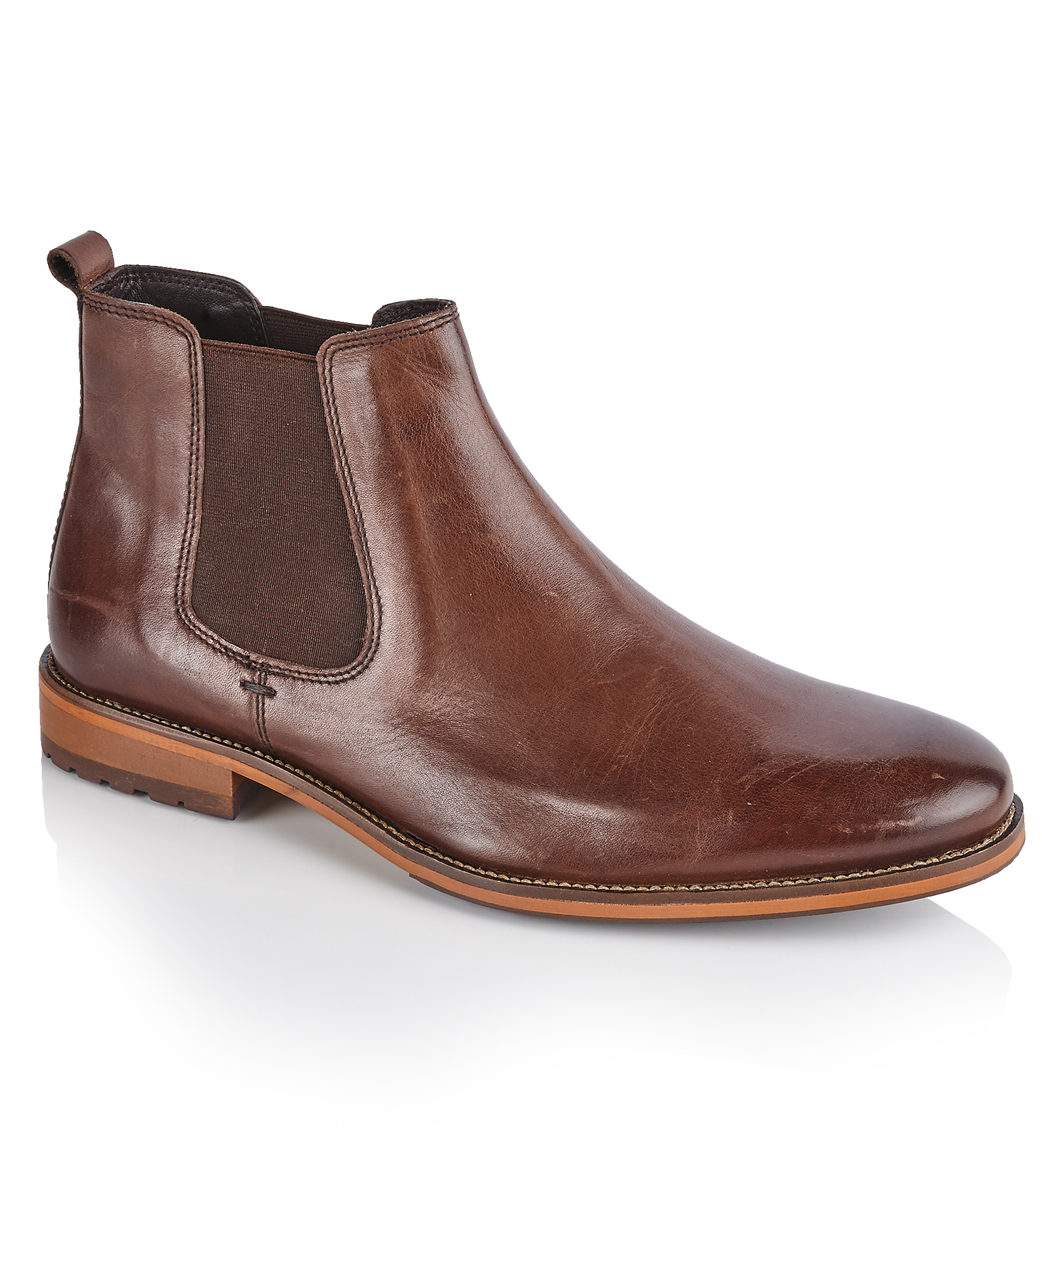 Solebay silver Street Atwood Brown Quality Leather Chelsea Boots